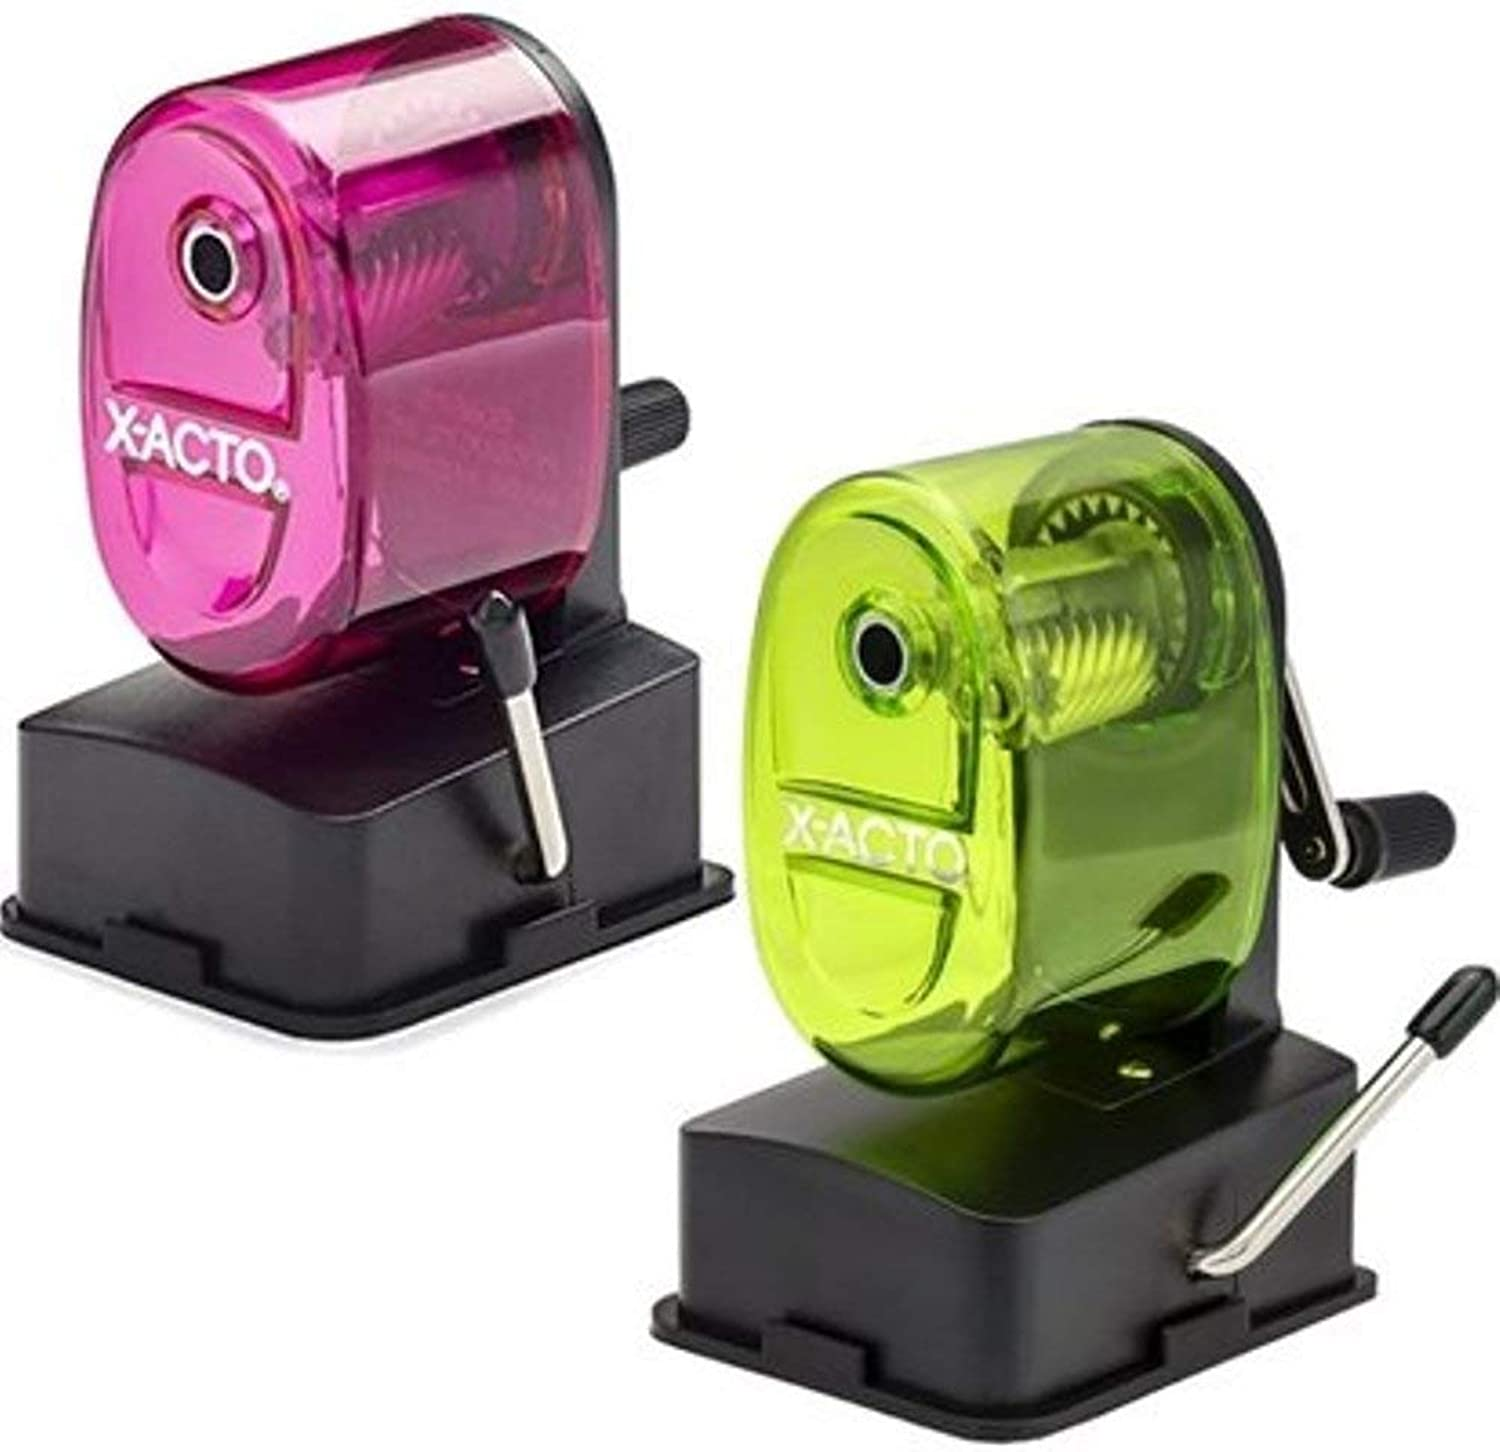 X-Acto 2012687 Bulldog Vacuum Wall Mount Manual Pencil Sharpener, Assorted Colors (2 Pack), See-through Receptacle, Affix to Any Nonporous Surface, X-ACTO Hardened Helical Cutter